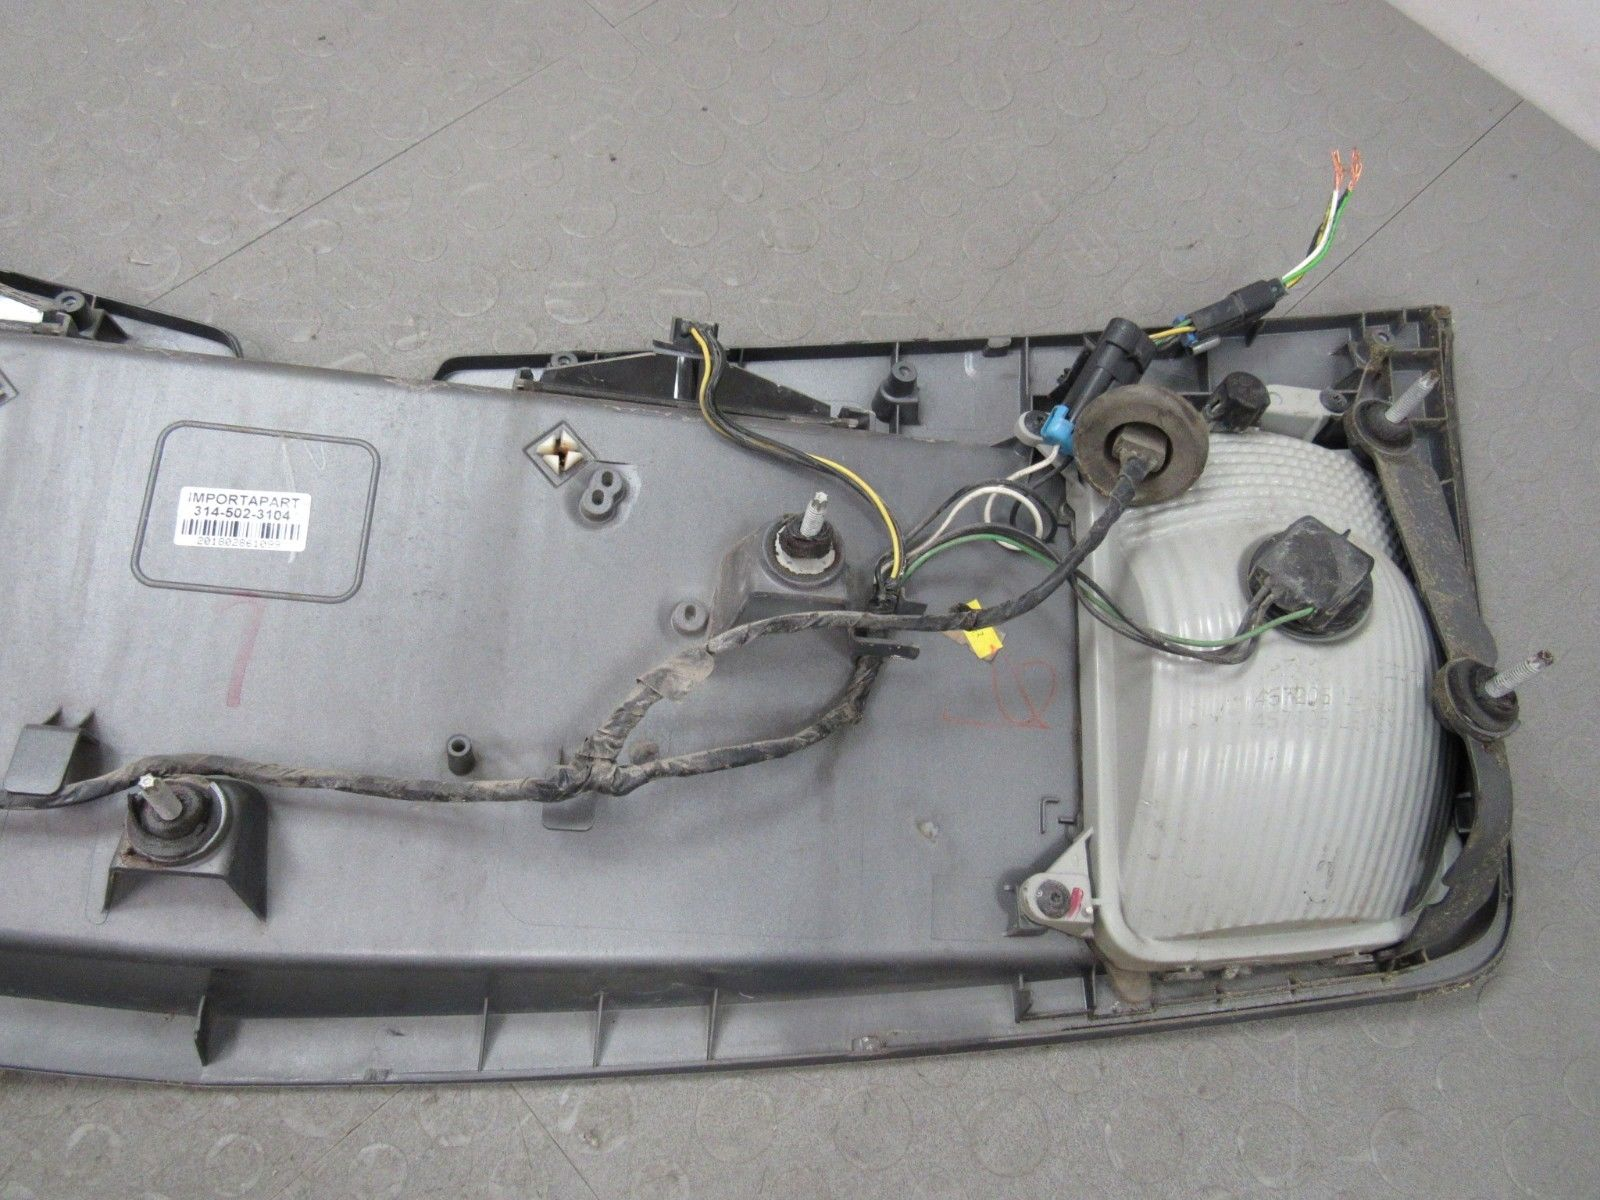 Cts Wiring Panel Detailed Schematics Diagram 03 Cadillac Alternator 07 Trunk Tail Finish Trim Bezel License Electrical Control